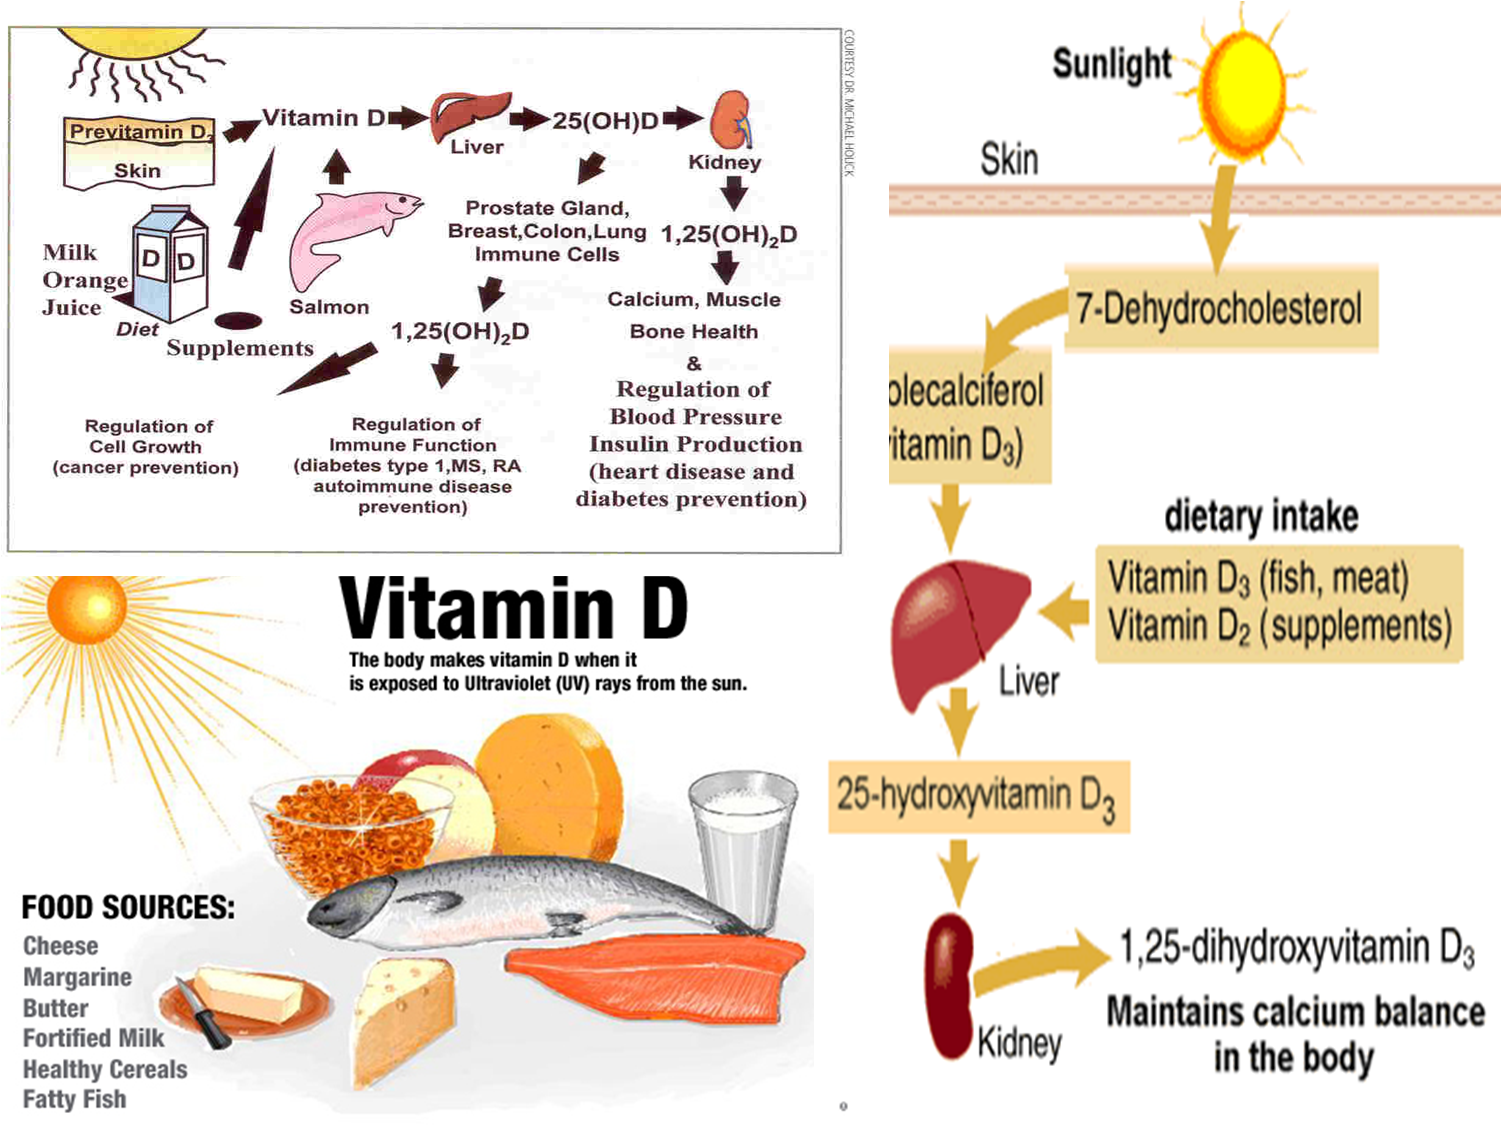 Vitamin D: What's the Latest?